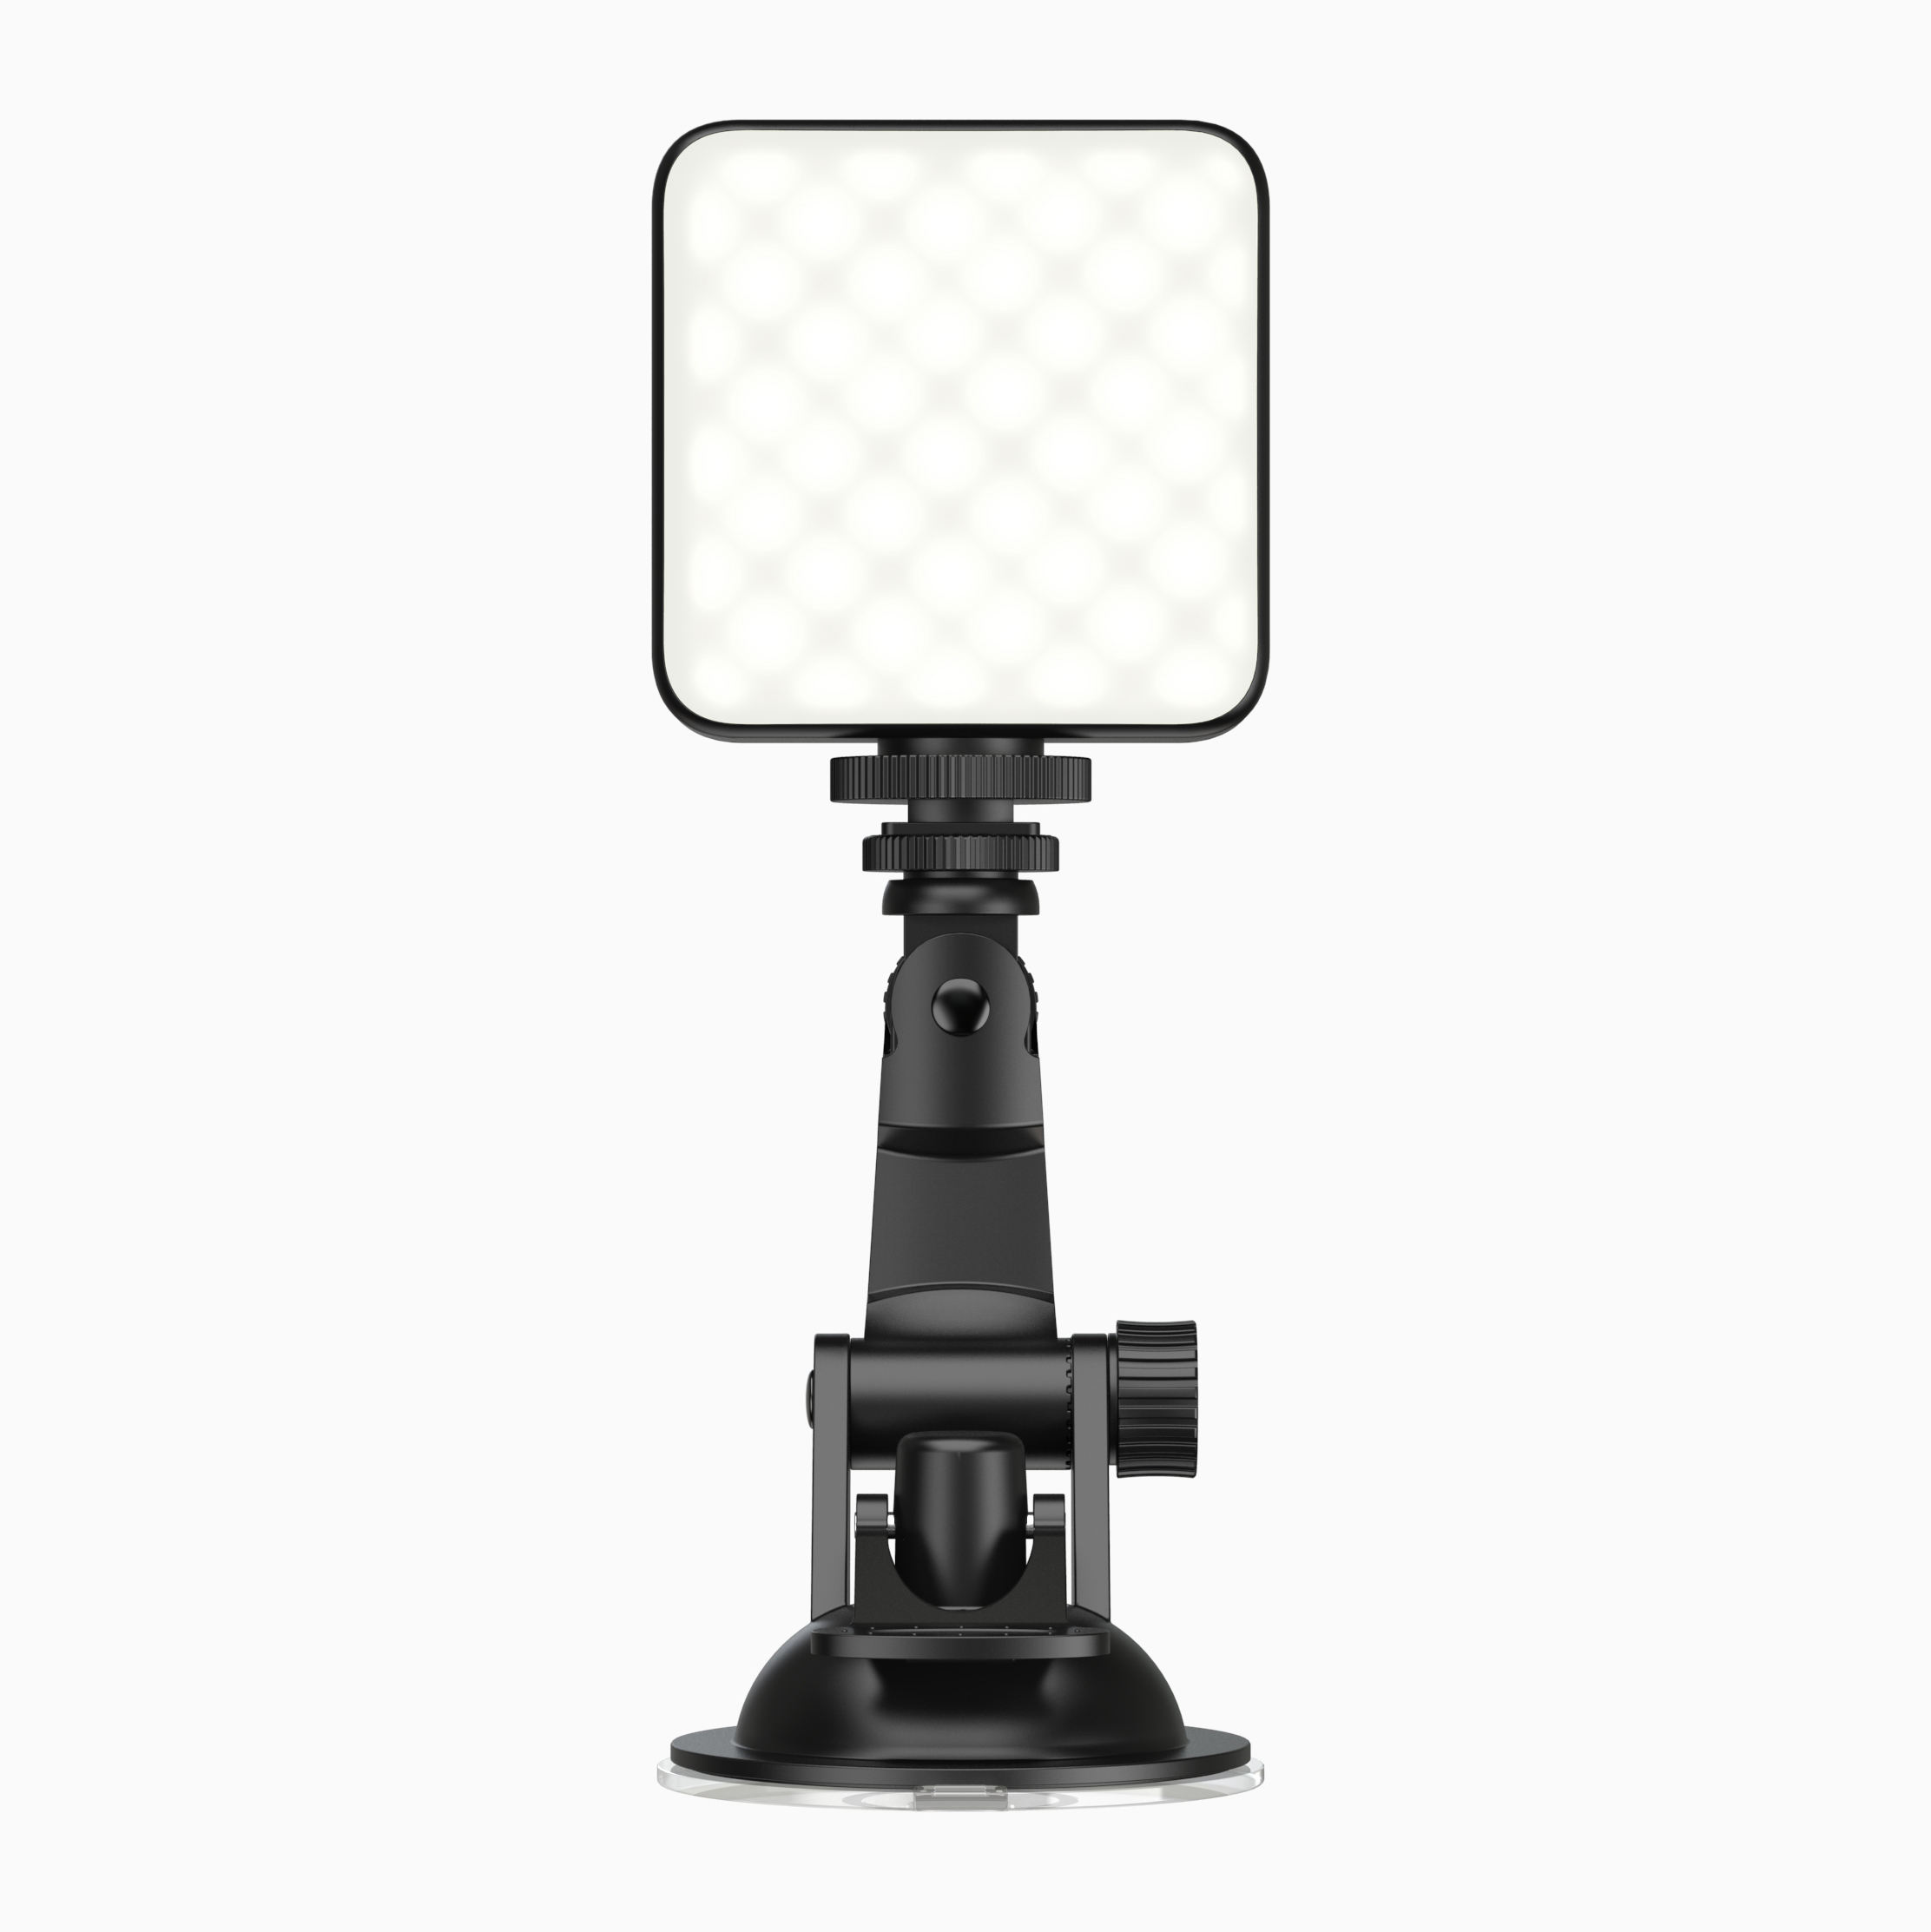 Video Conference Lighting Kit for Remote Working Computer LED Video Light with Suction Cup for Broadcast Live Streaming